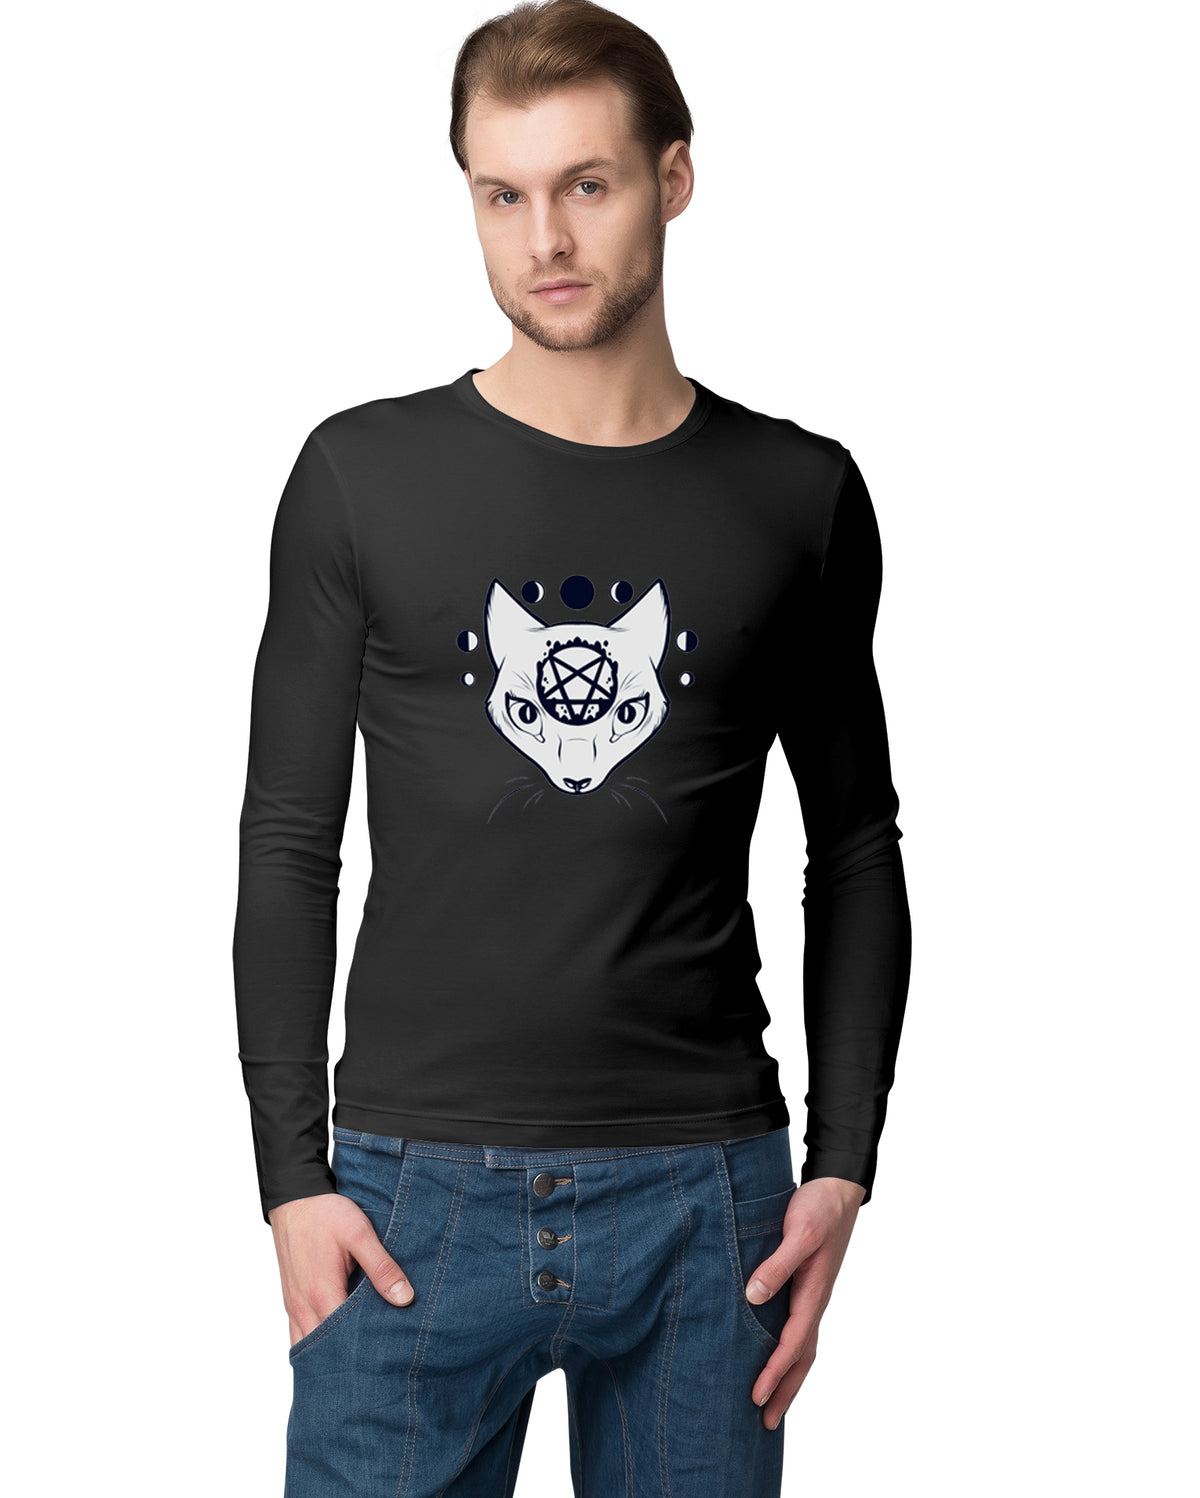 Halloween Special Men Full Sleeve T-Shirt - Pockets Moda Customise Hoodies and Tshirt